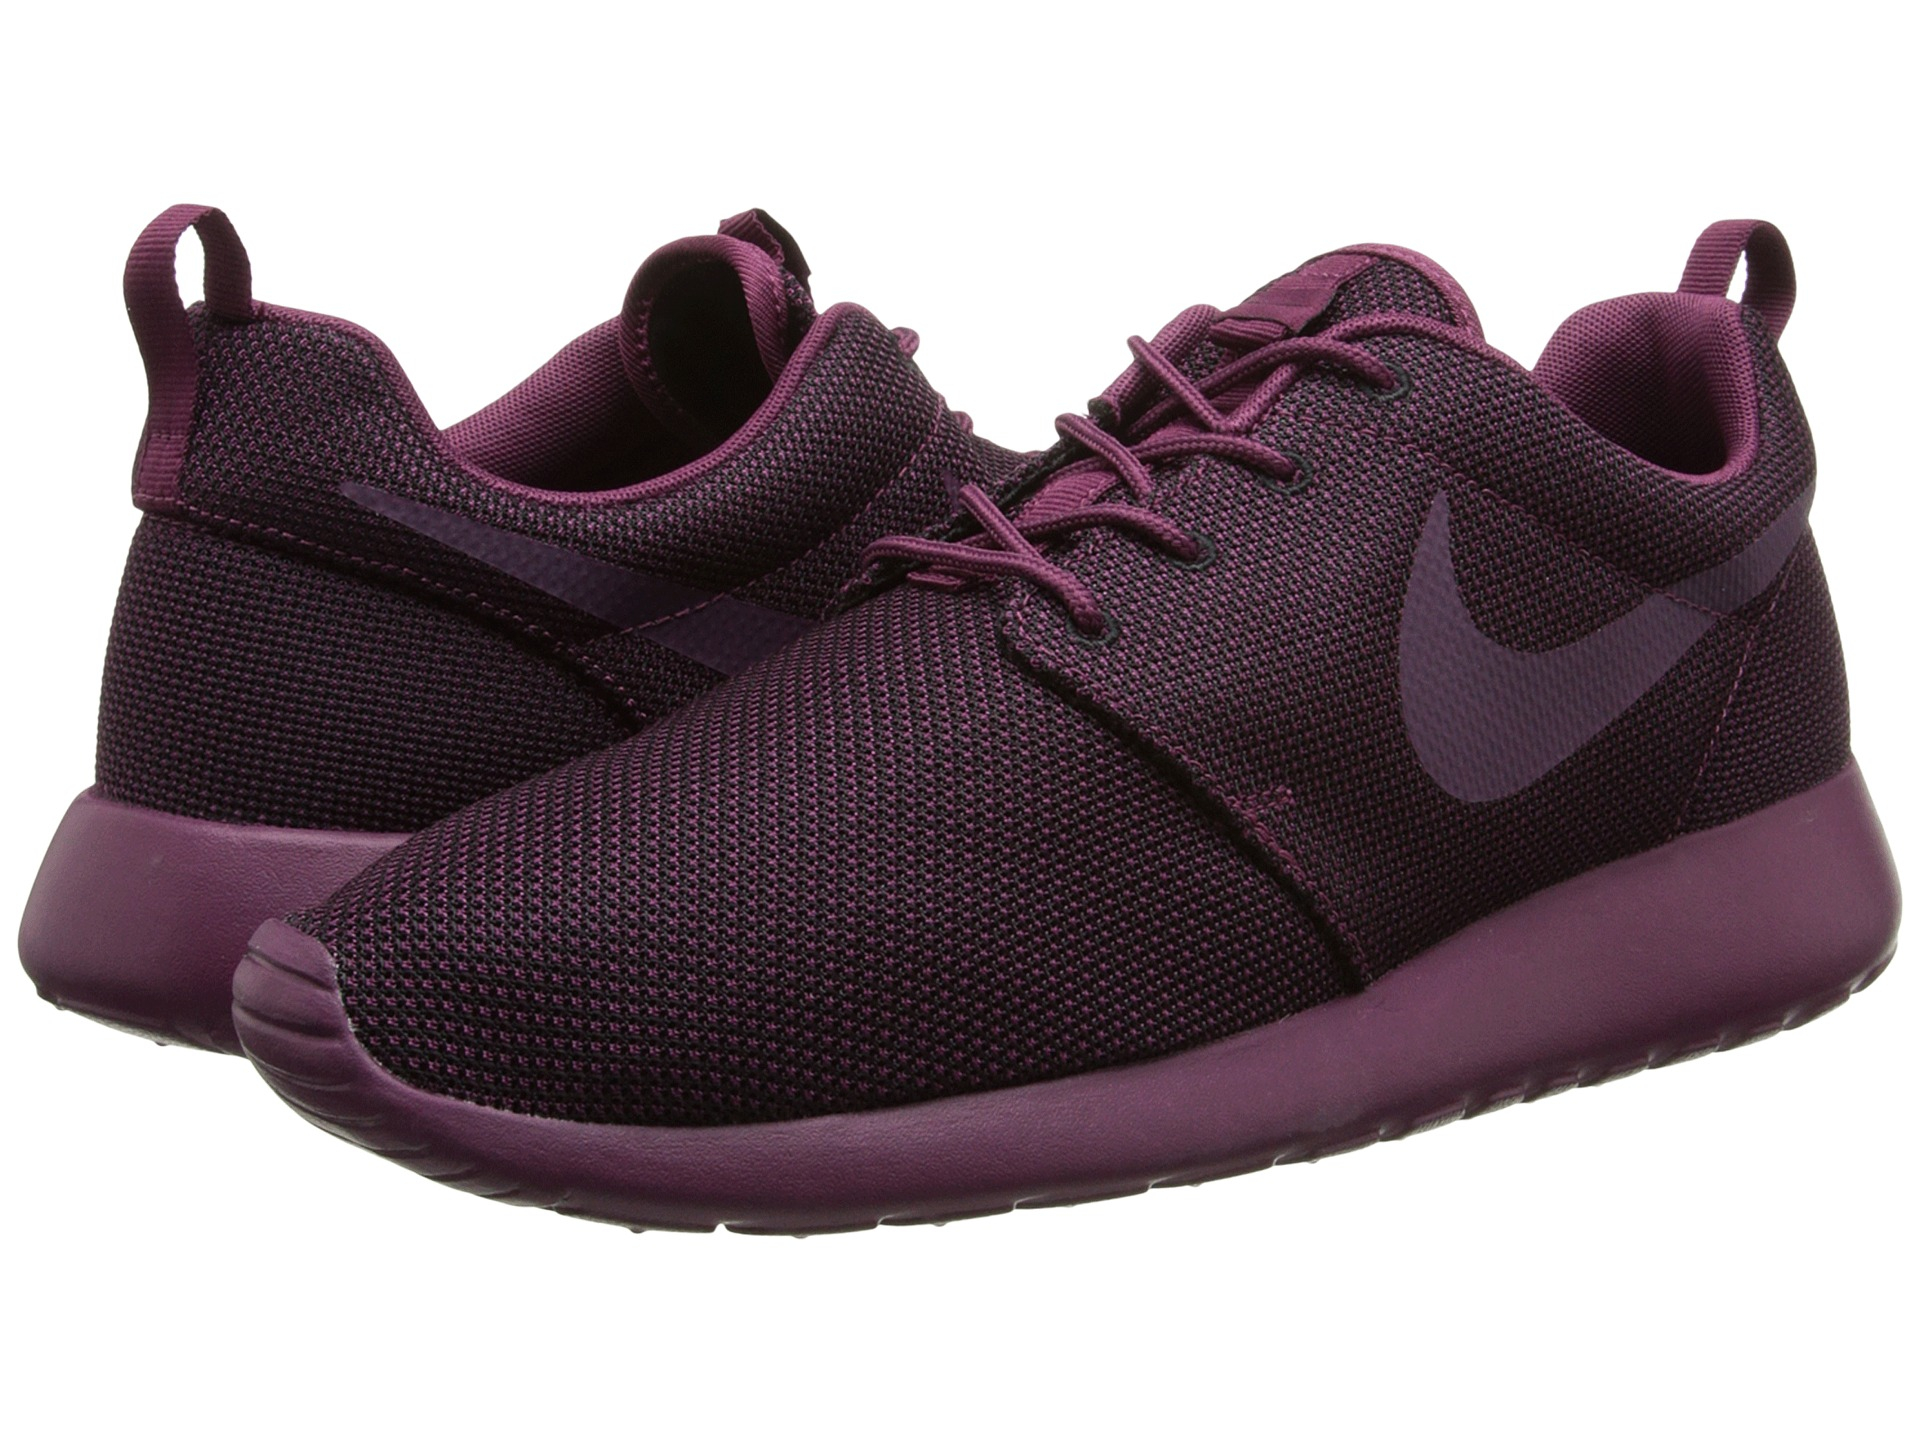 online retailer c8550 e09fc ... coupon code for gallery. previously sold at zappos mens nike roshe  d84eb 1dd5e